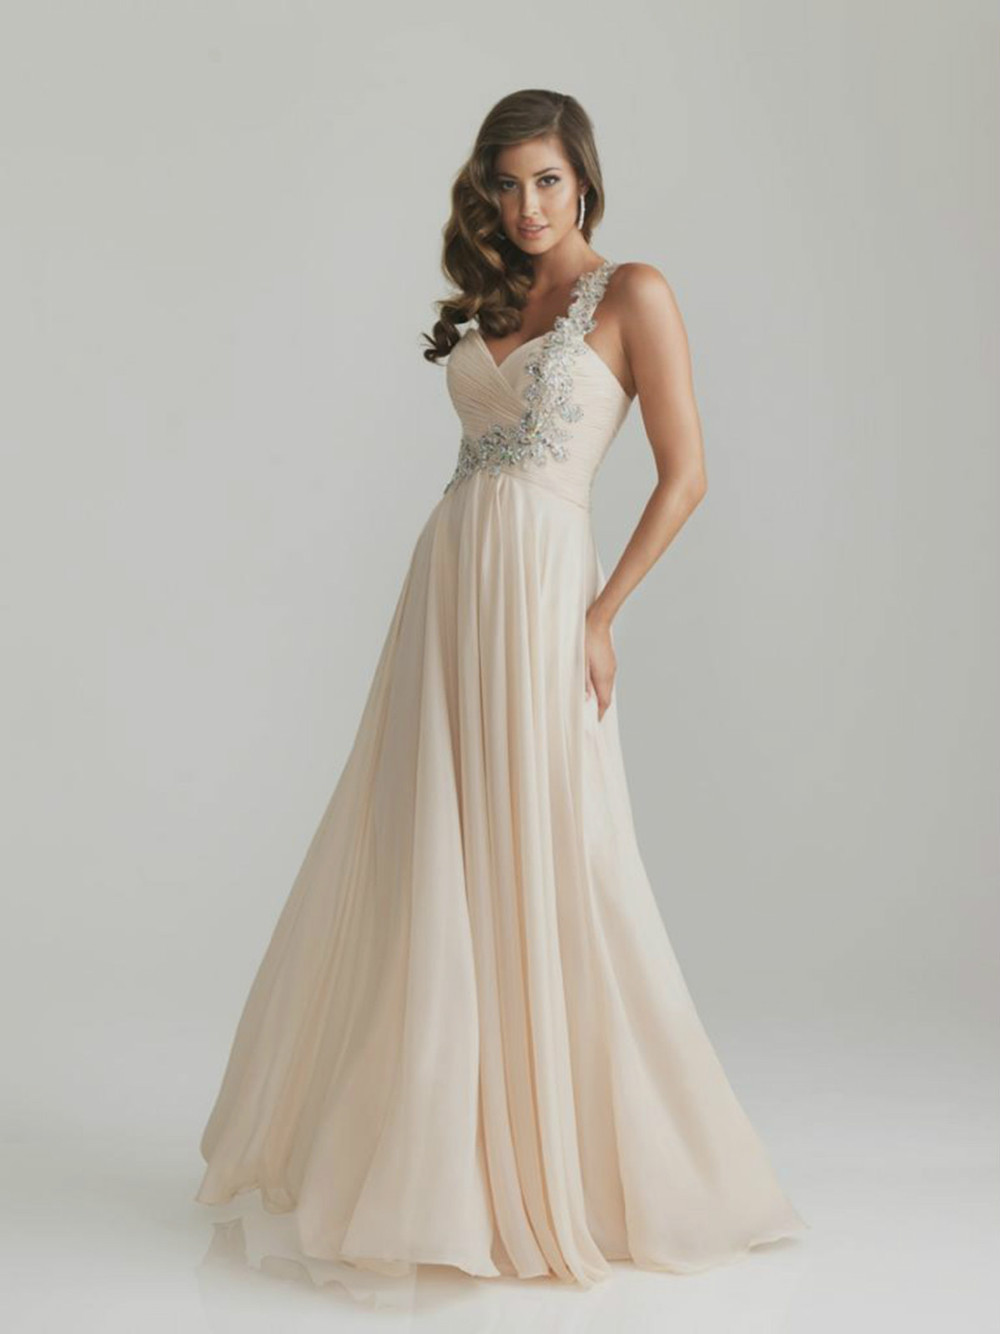 2013 Long One-Shoulder Chiffon Bridesmaid Dresses - Beautiful wedding clothes store